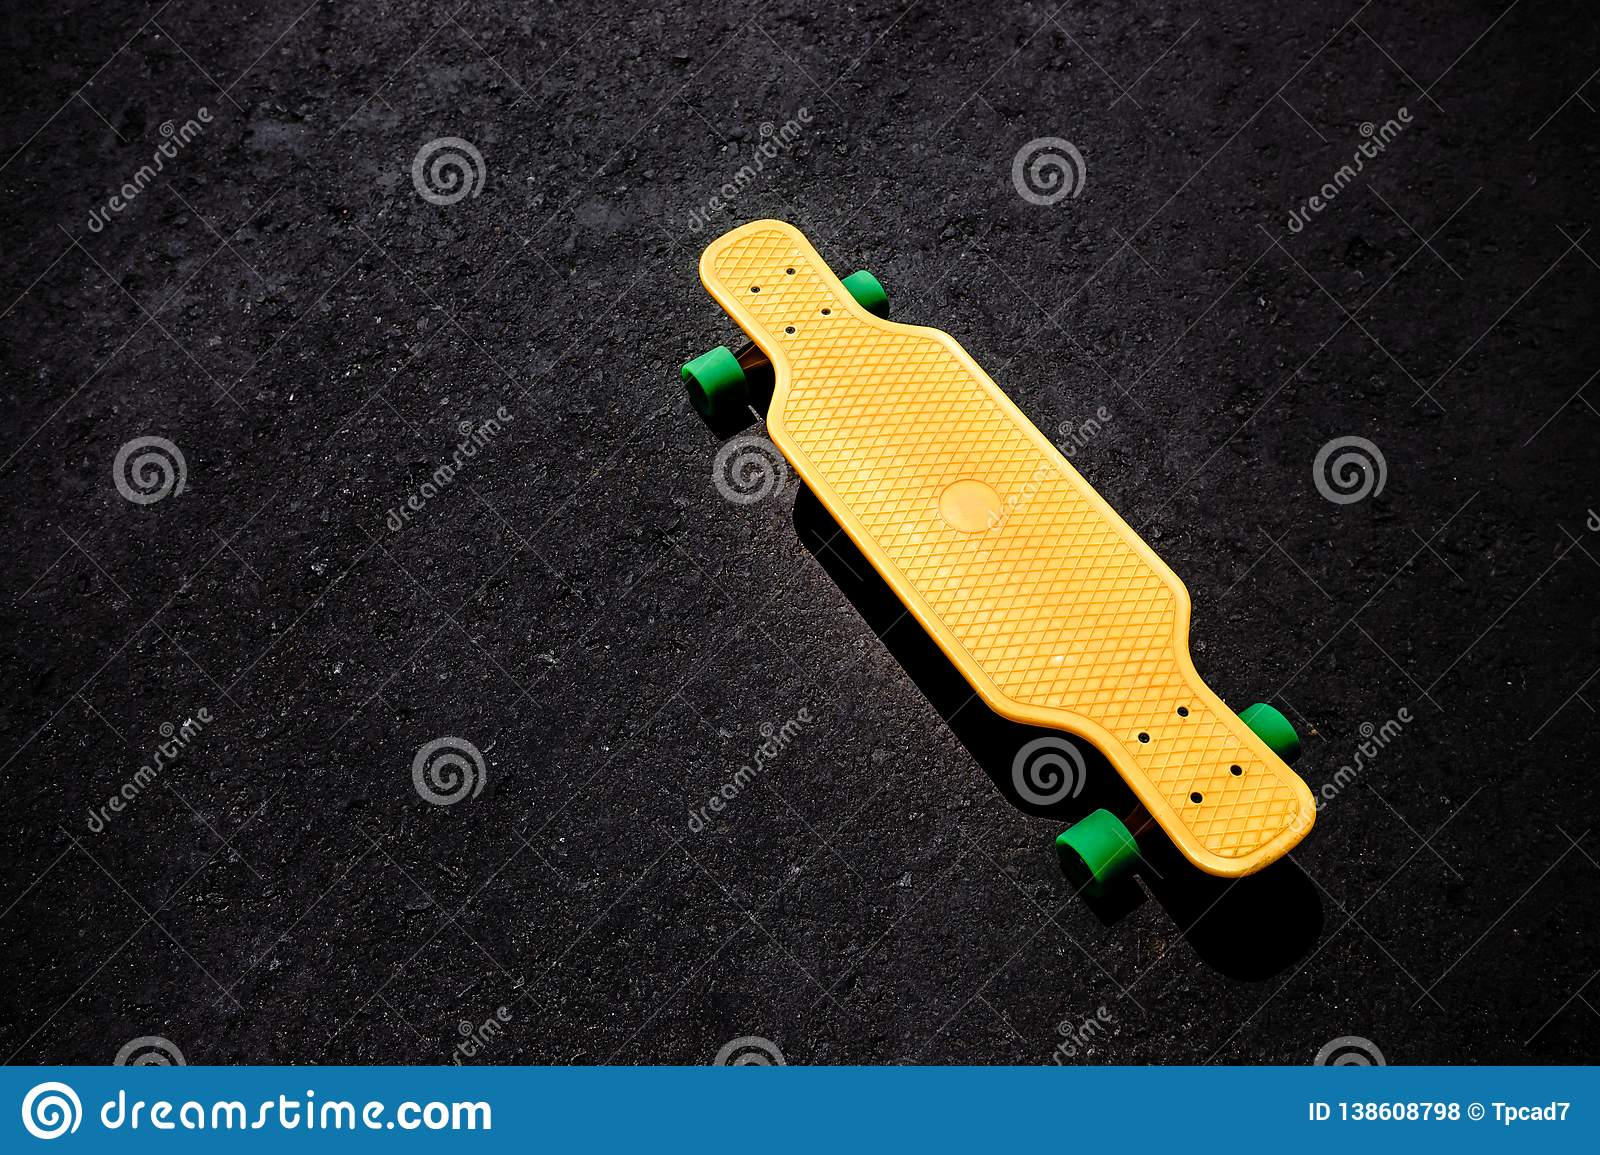 Yellow plastic longboard on the asphalt surface